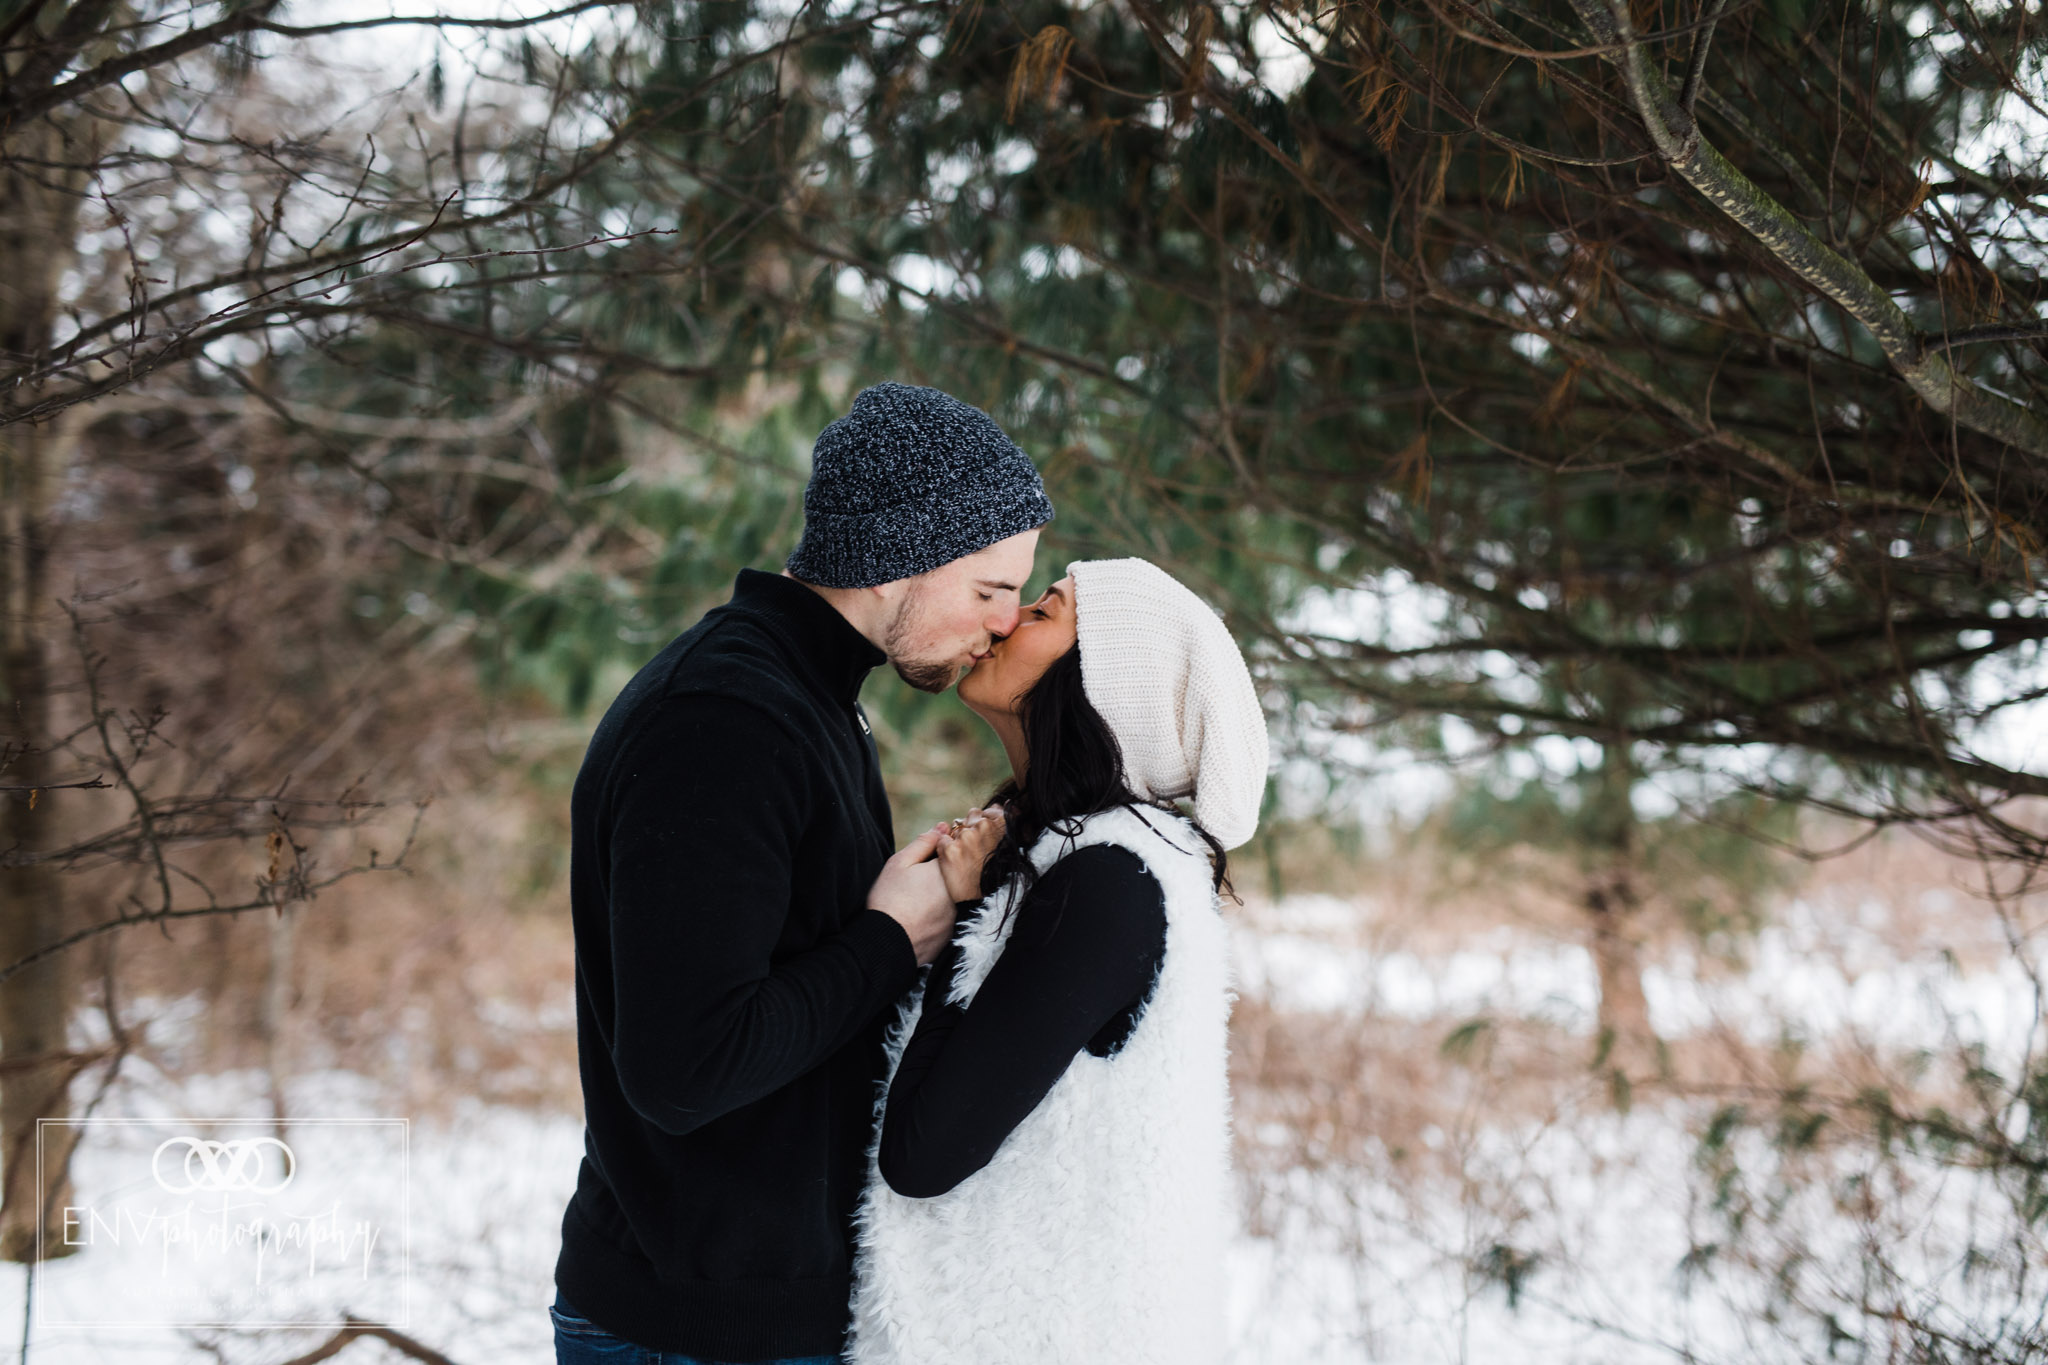 columbus ohio mount vernon ohio winter snowy family engagement photography (10).jpg